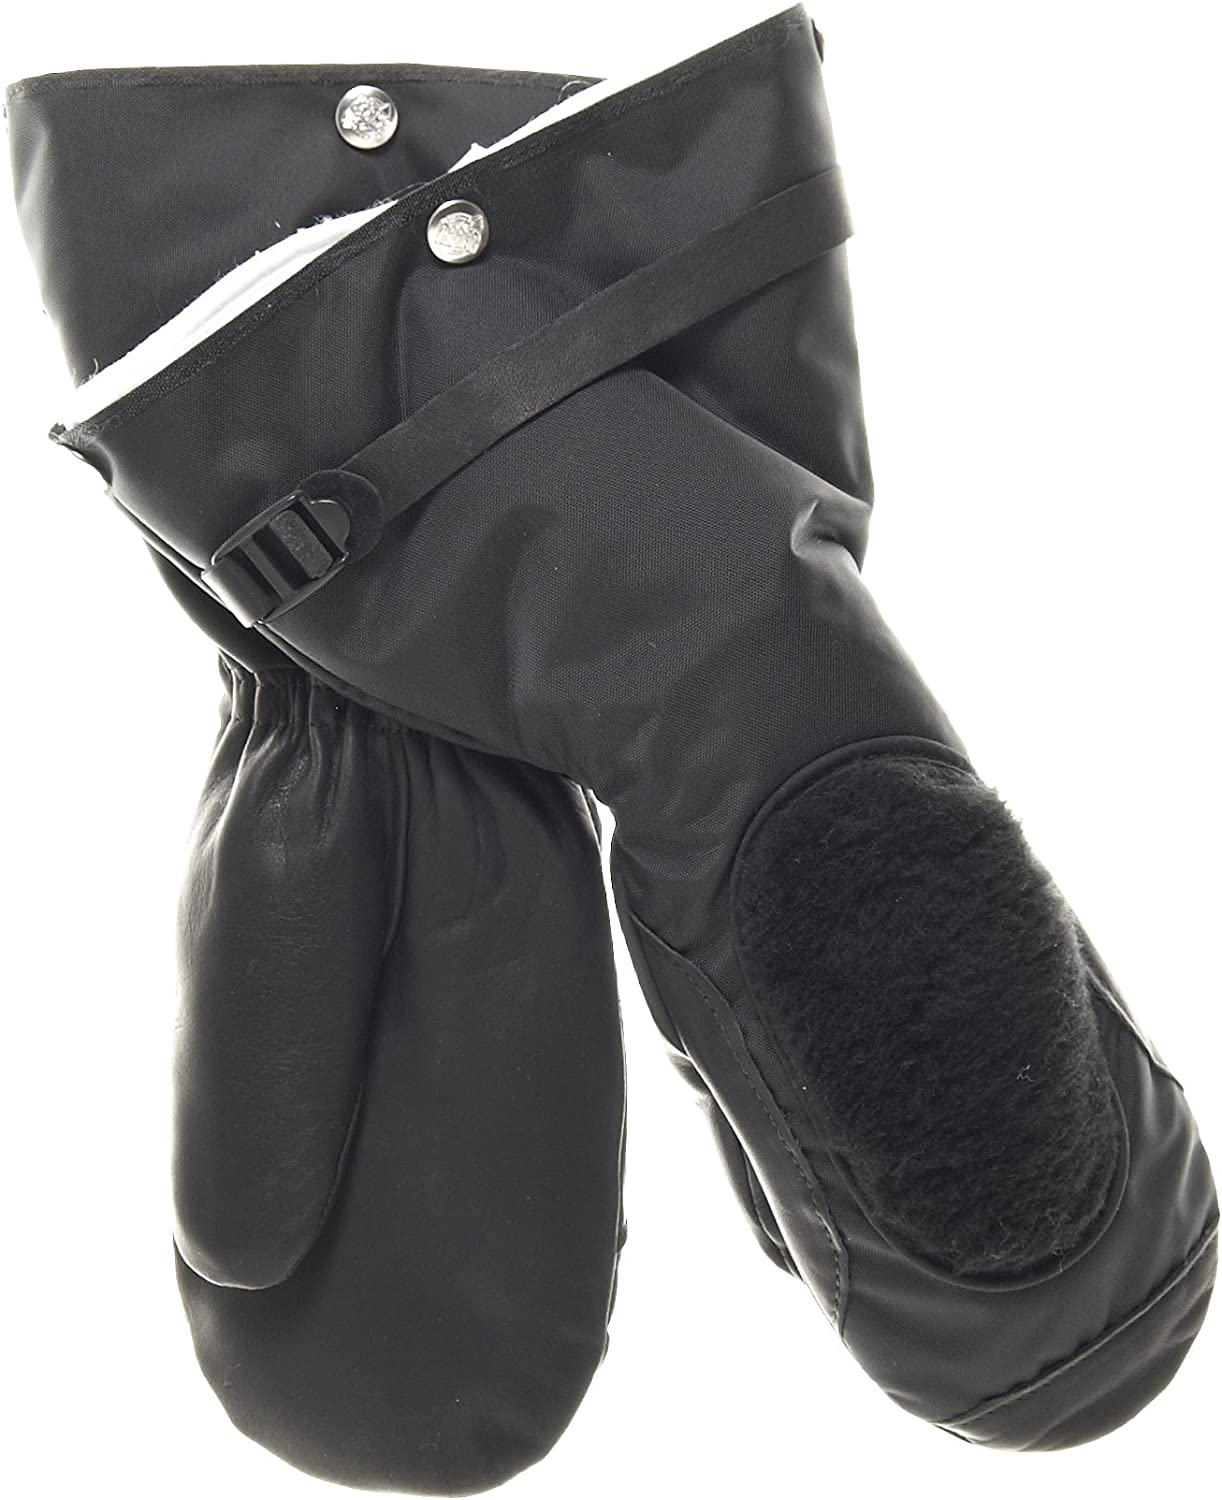 Raber Gloves Mens Artic 1 Winter Gauntlet Mitts Teen//Youth Sizes